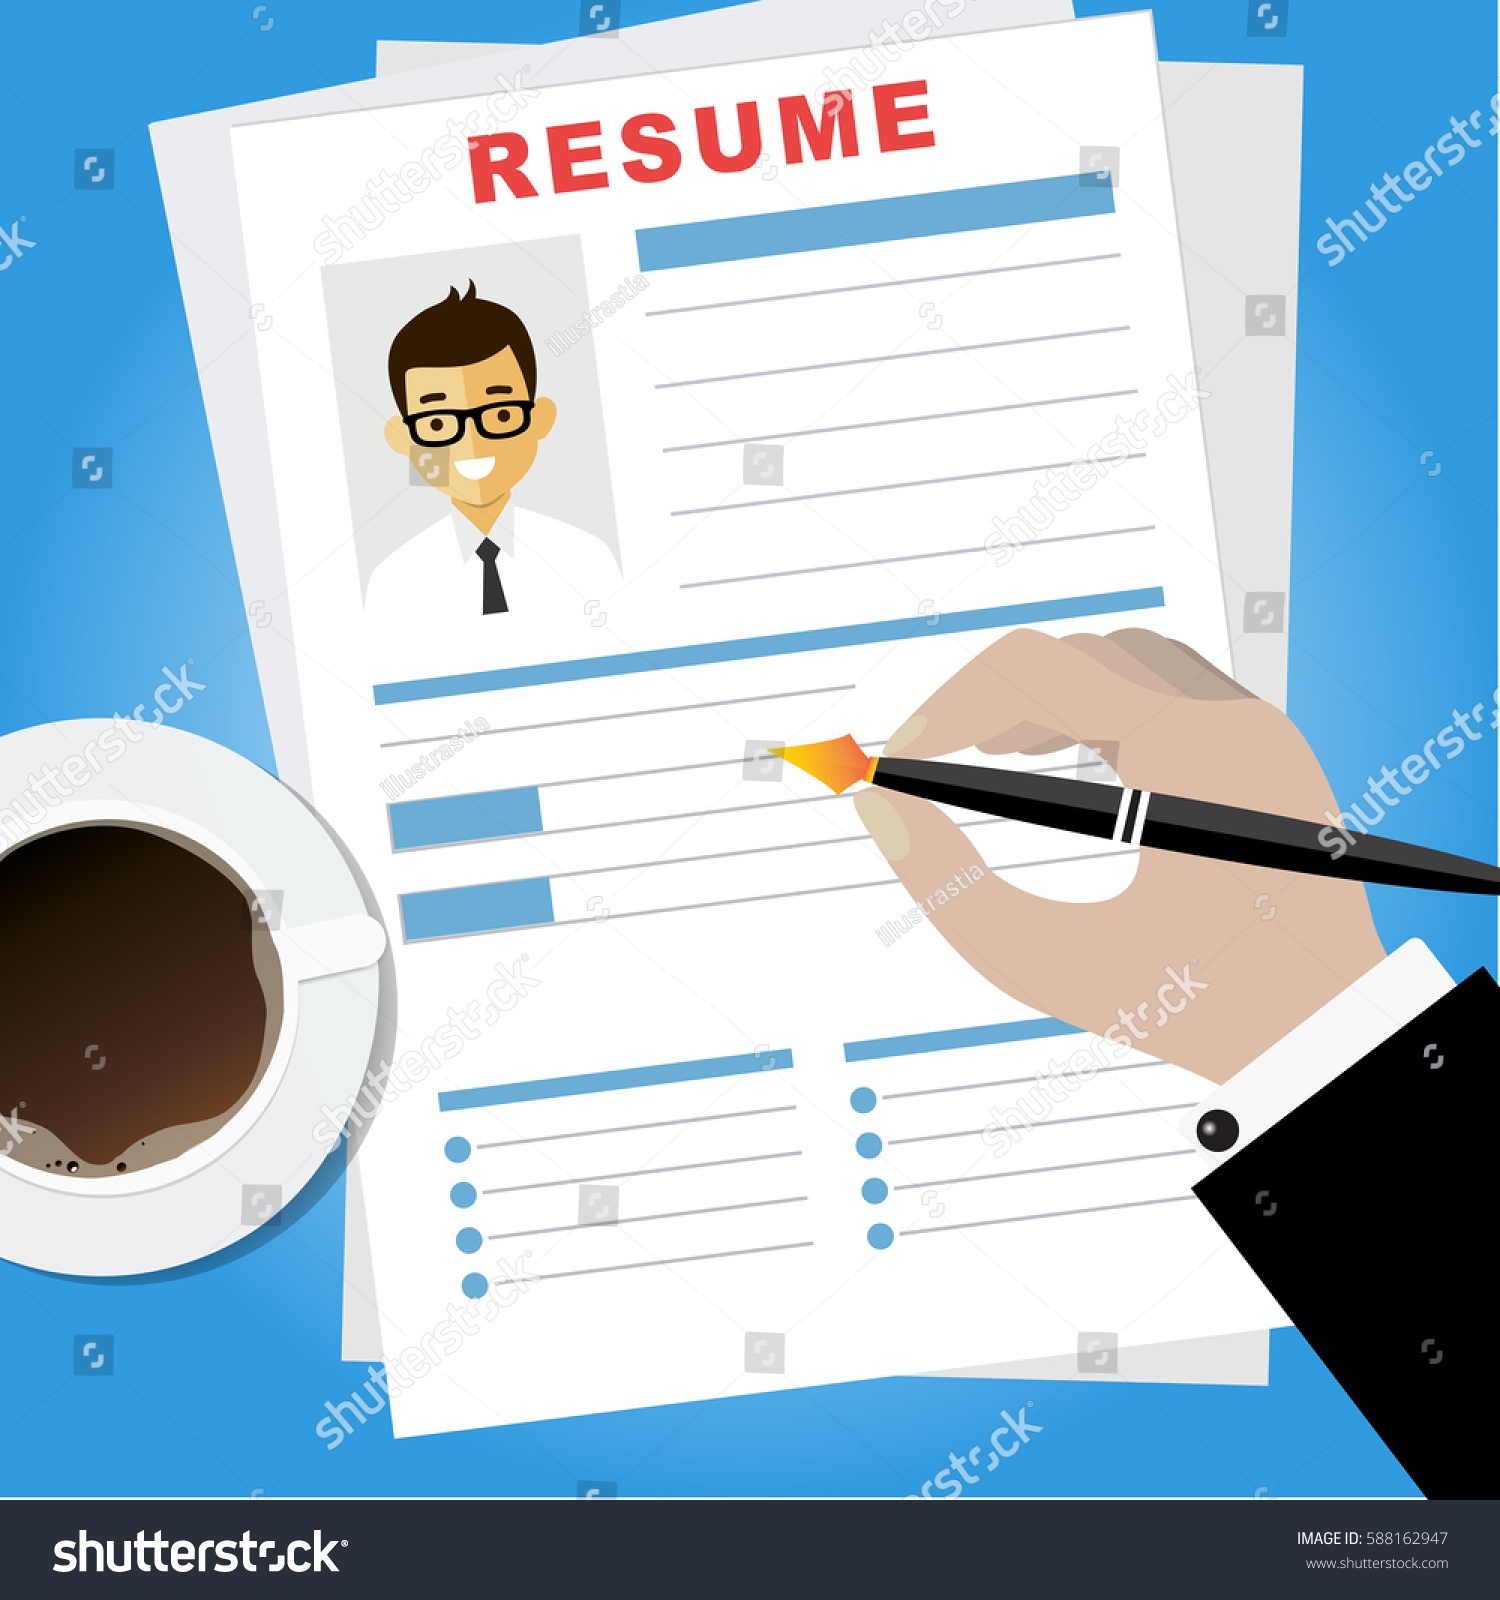 Resume Writing Concept. Woman Writing Business Resume With A Pen.  Assessment Of The Applicant  Resume Writing Business